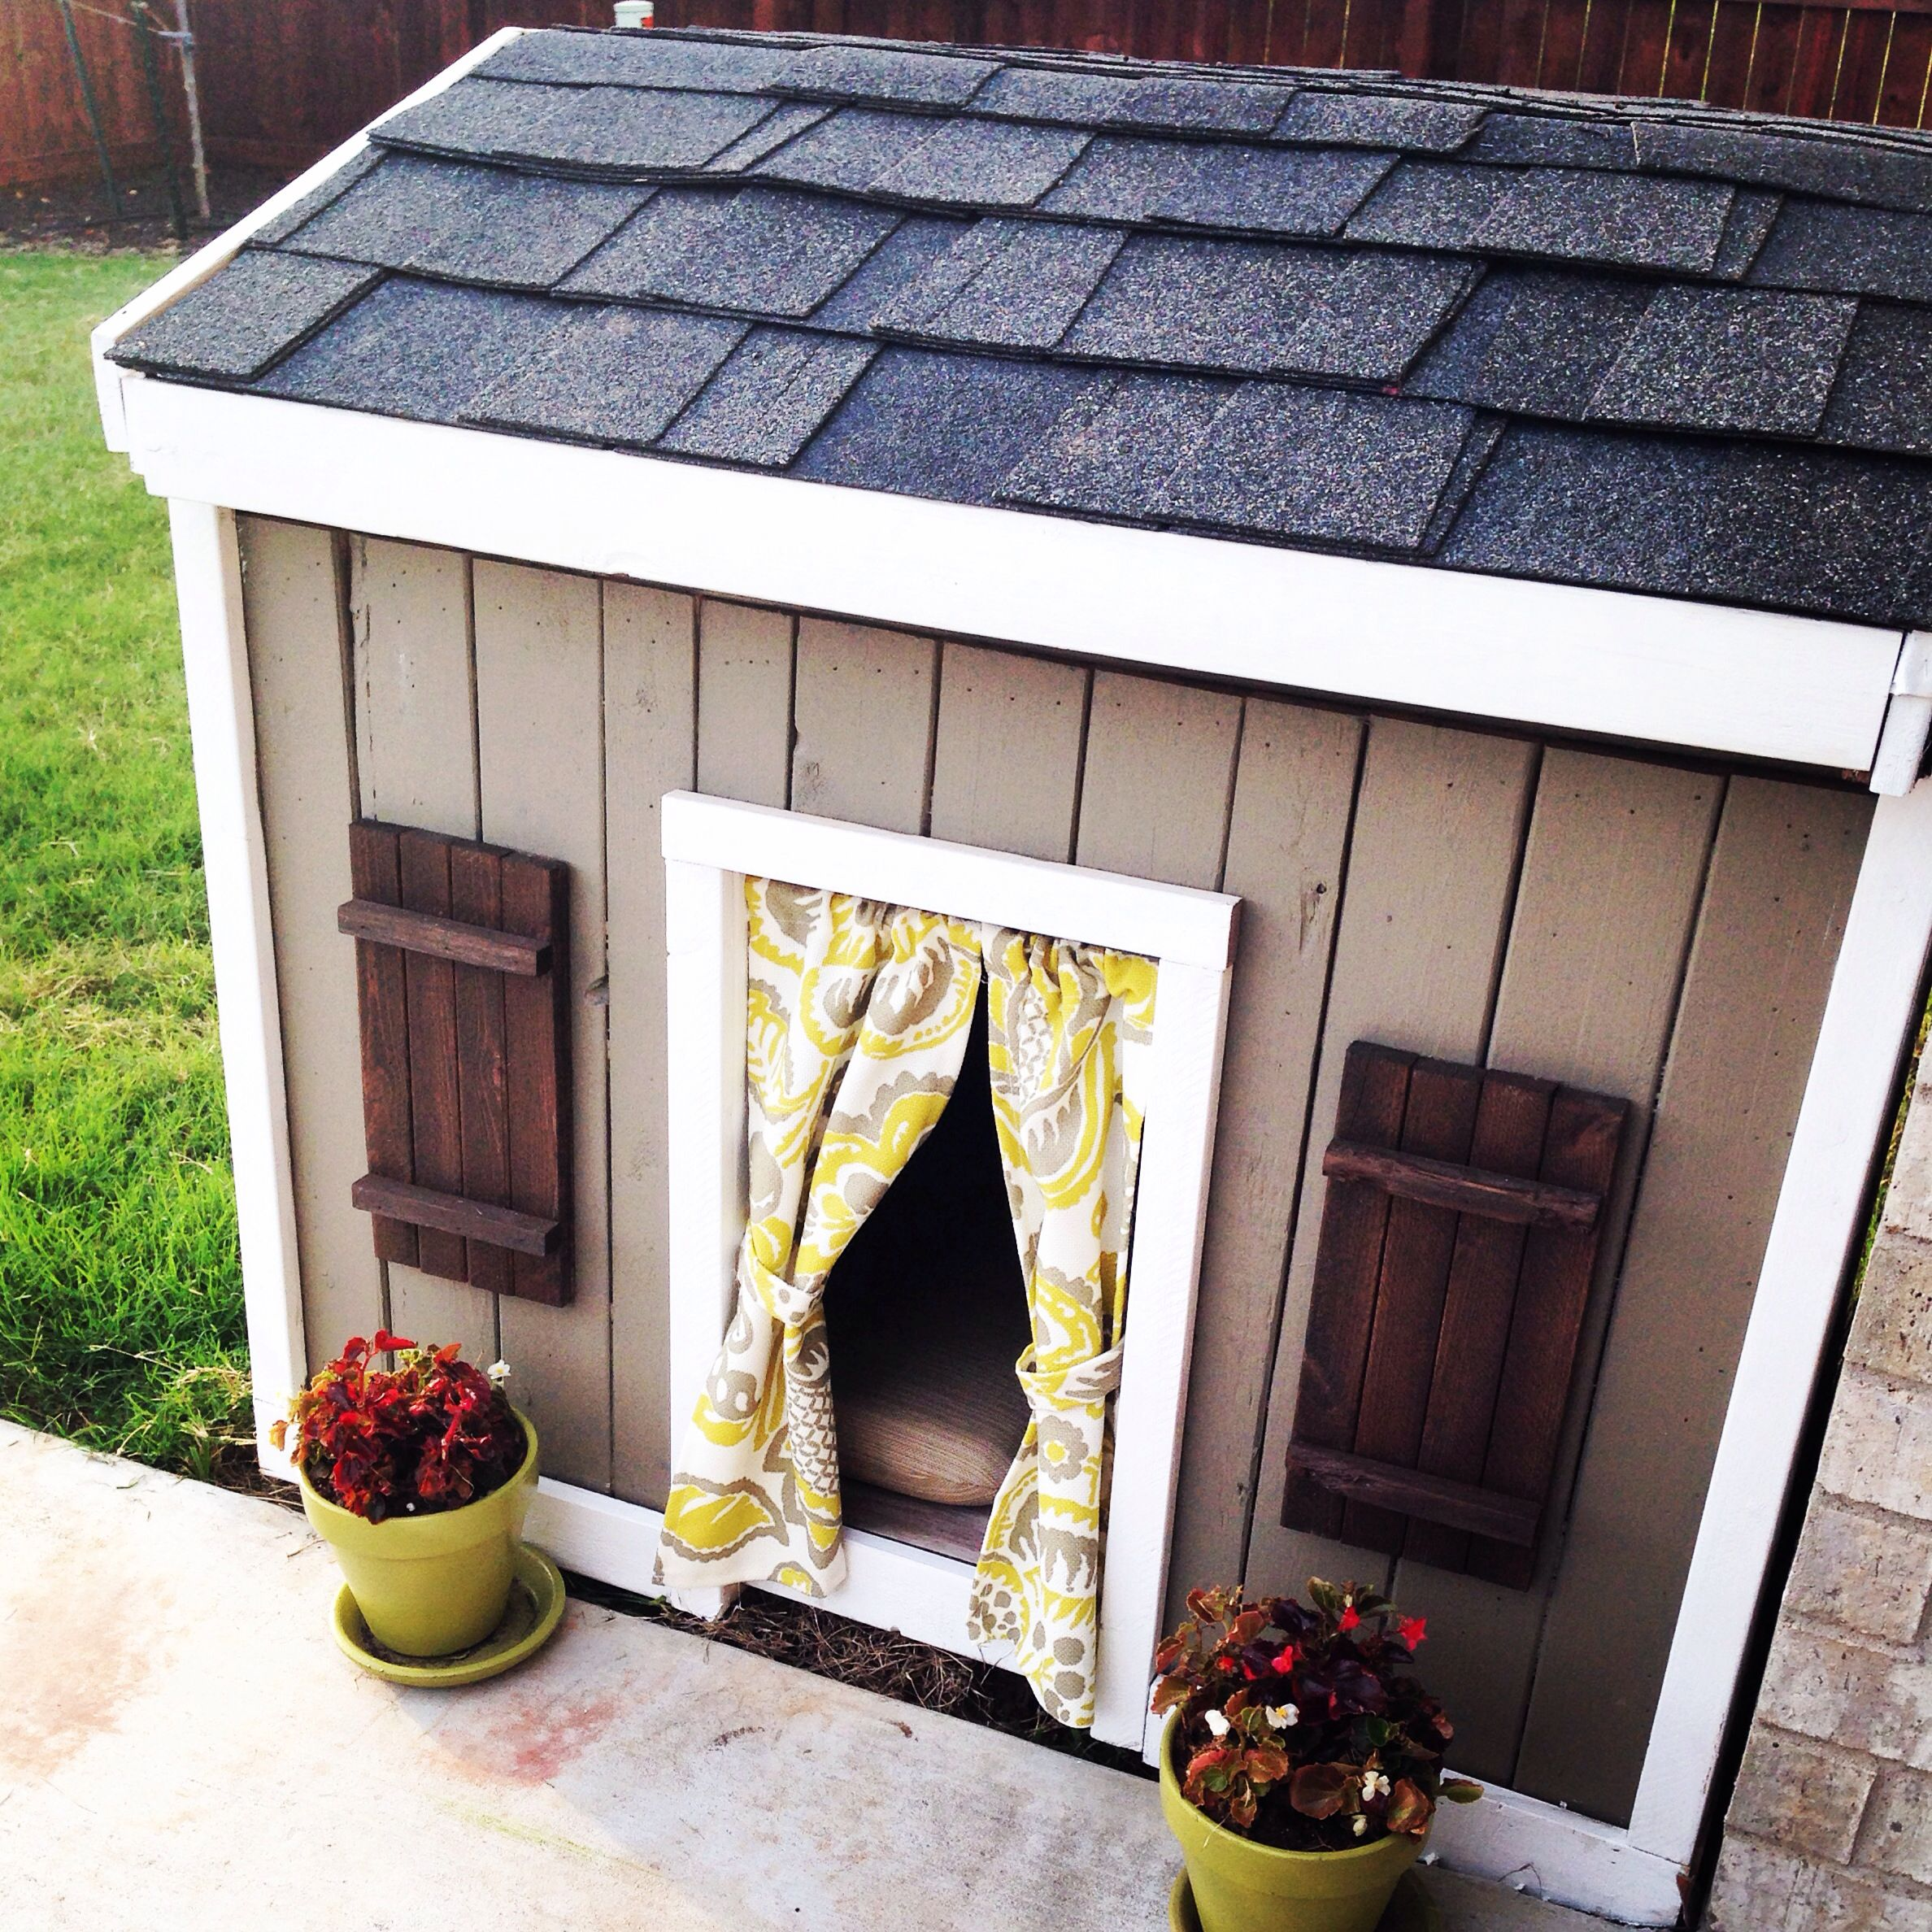 Diy Doghouse From Construction Scraps It S Amazing What A